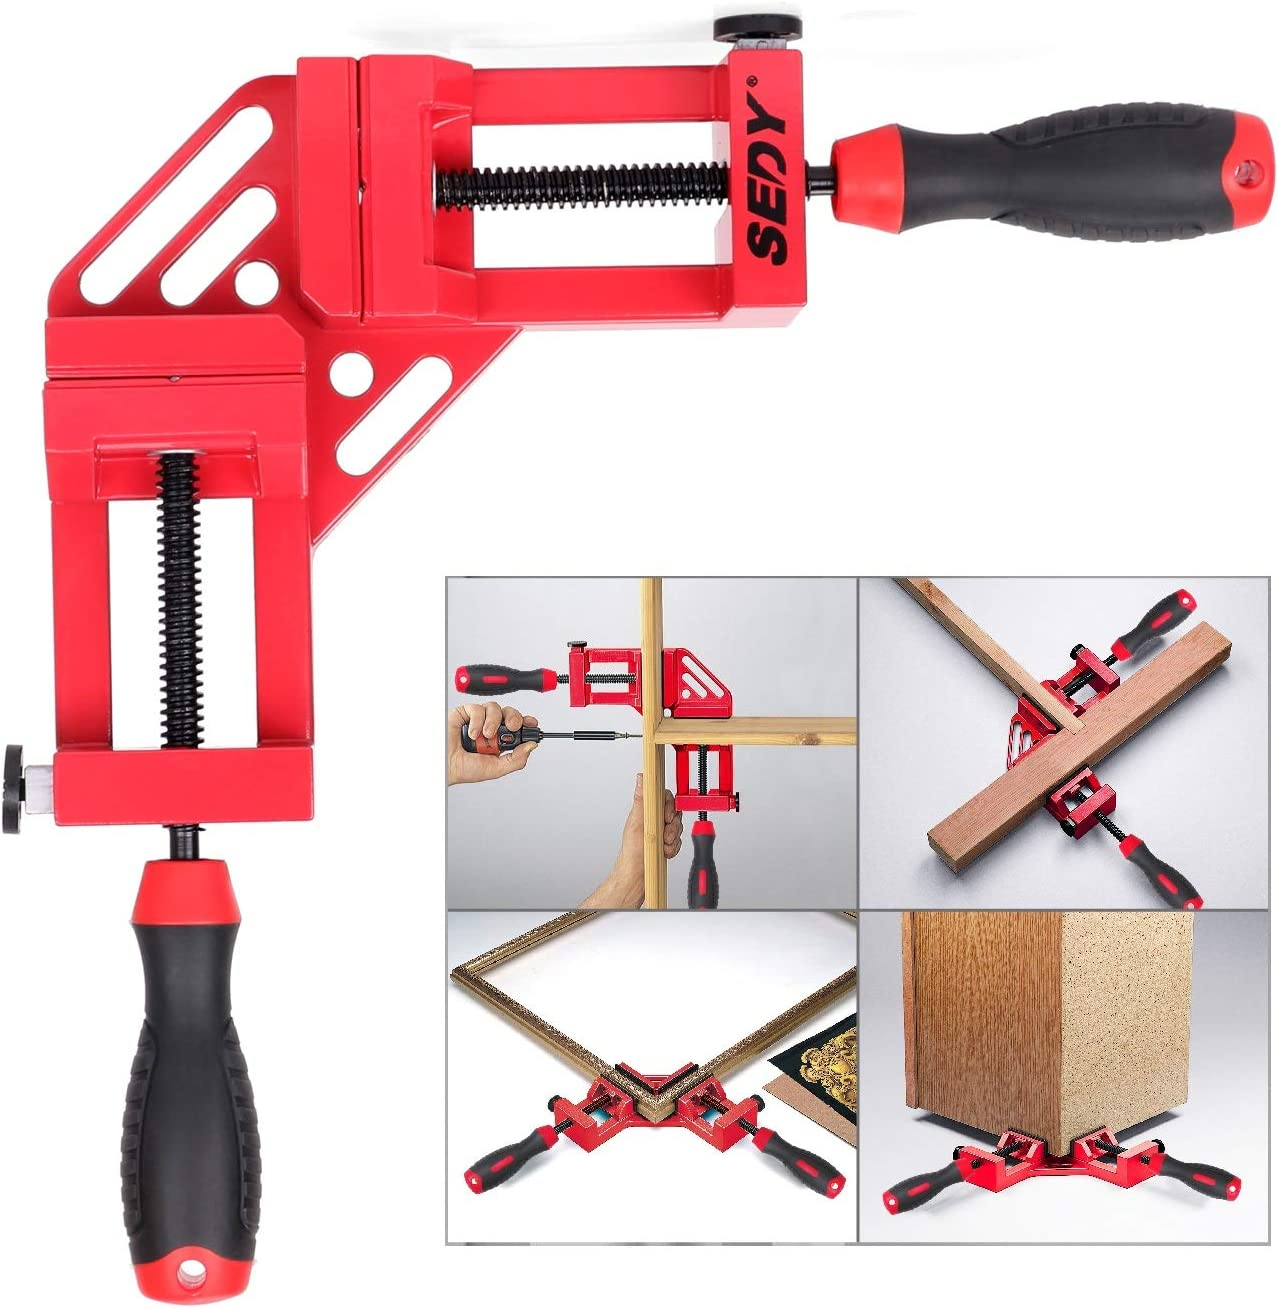 Aluminum Alloy Corner Clamp for Woodworking Picture Framing Drilling Doweling Corner Clamp Quick and Accurate SEDY 90 Degree Right Angle Clamp